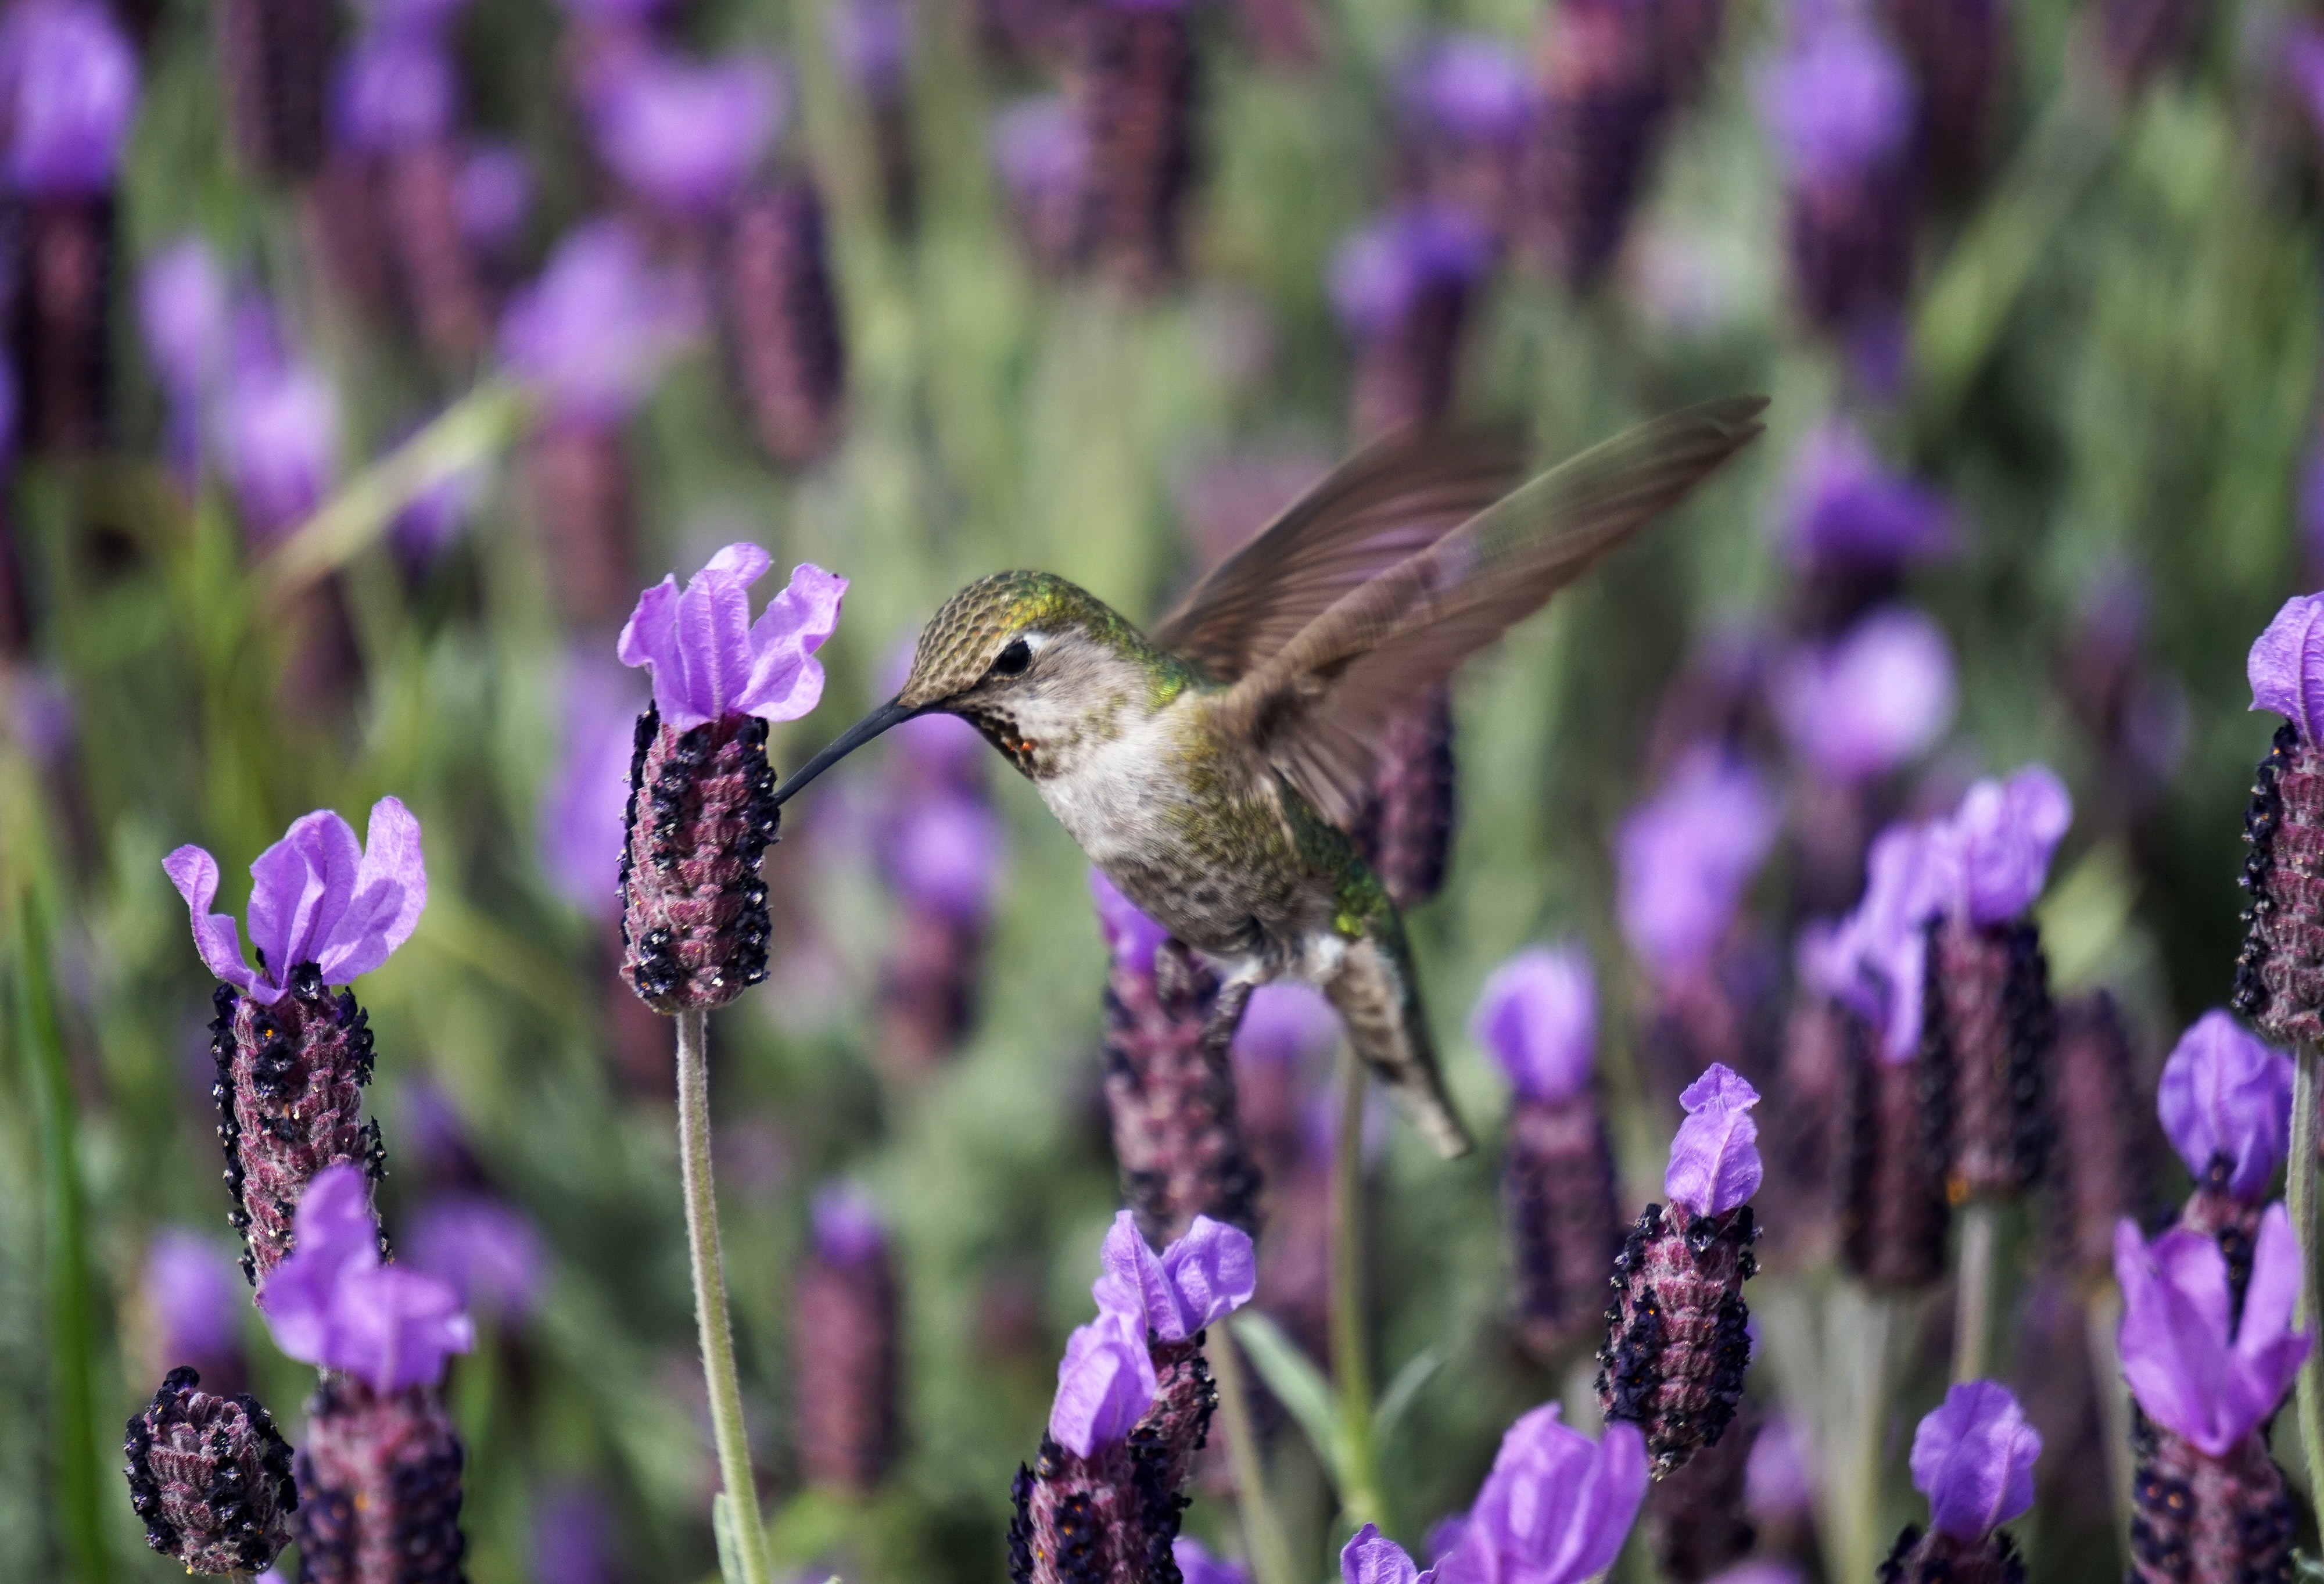 Close-up of a hummingbird feeding on lavender flowers